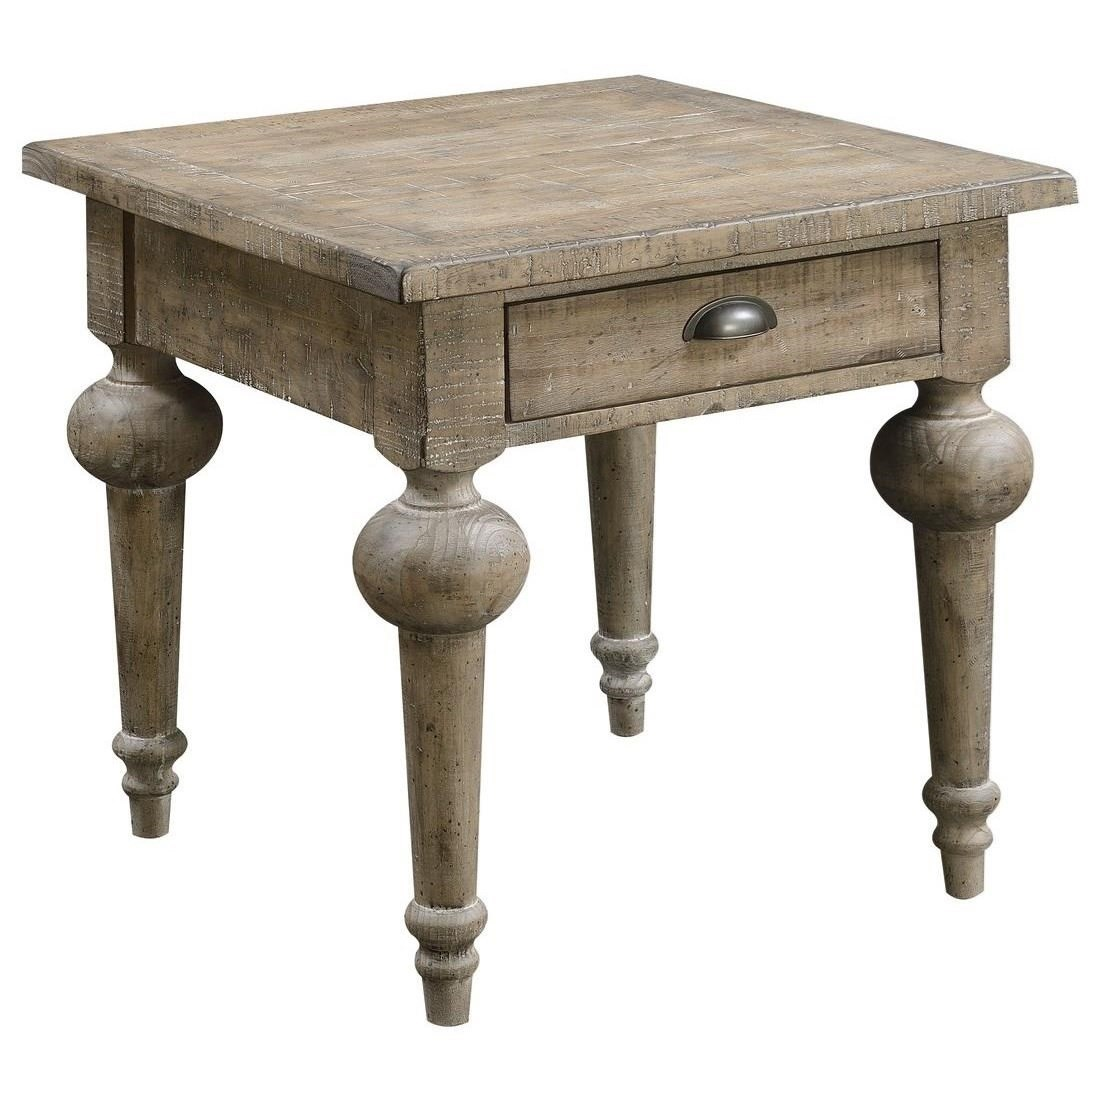 Interlude End Table Pine-Sandstone Finish Set Up by Emerald at Northeast Factory Direct